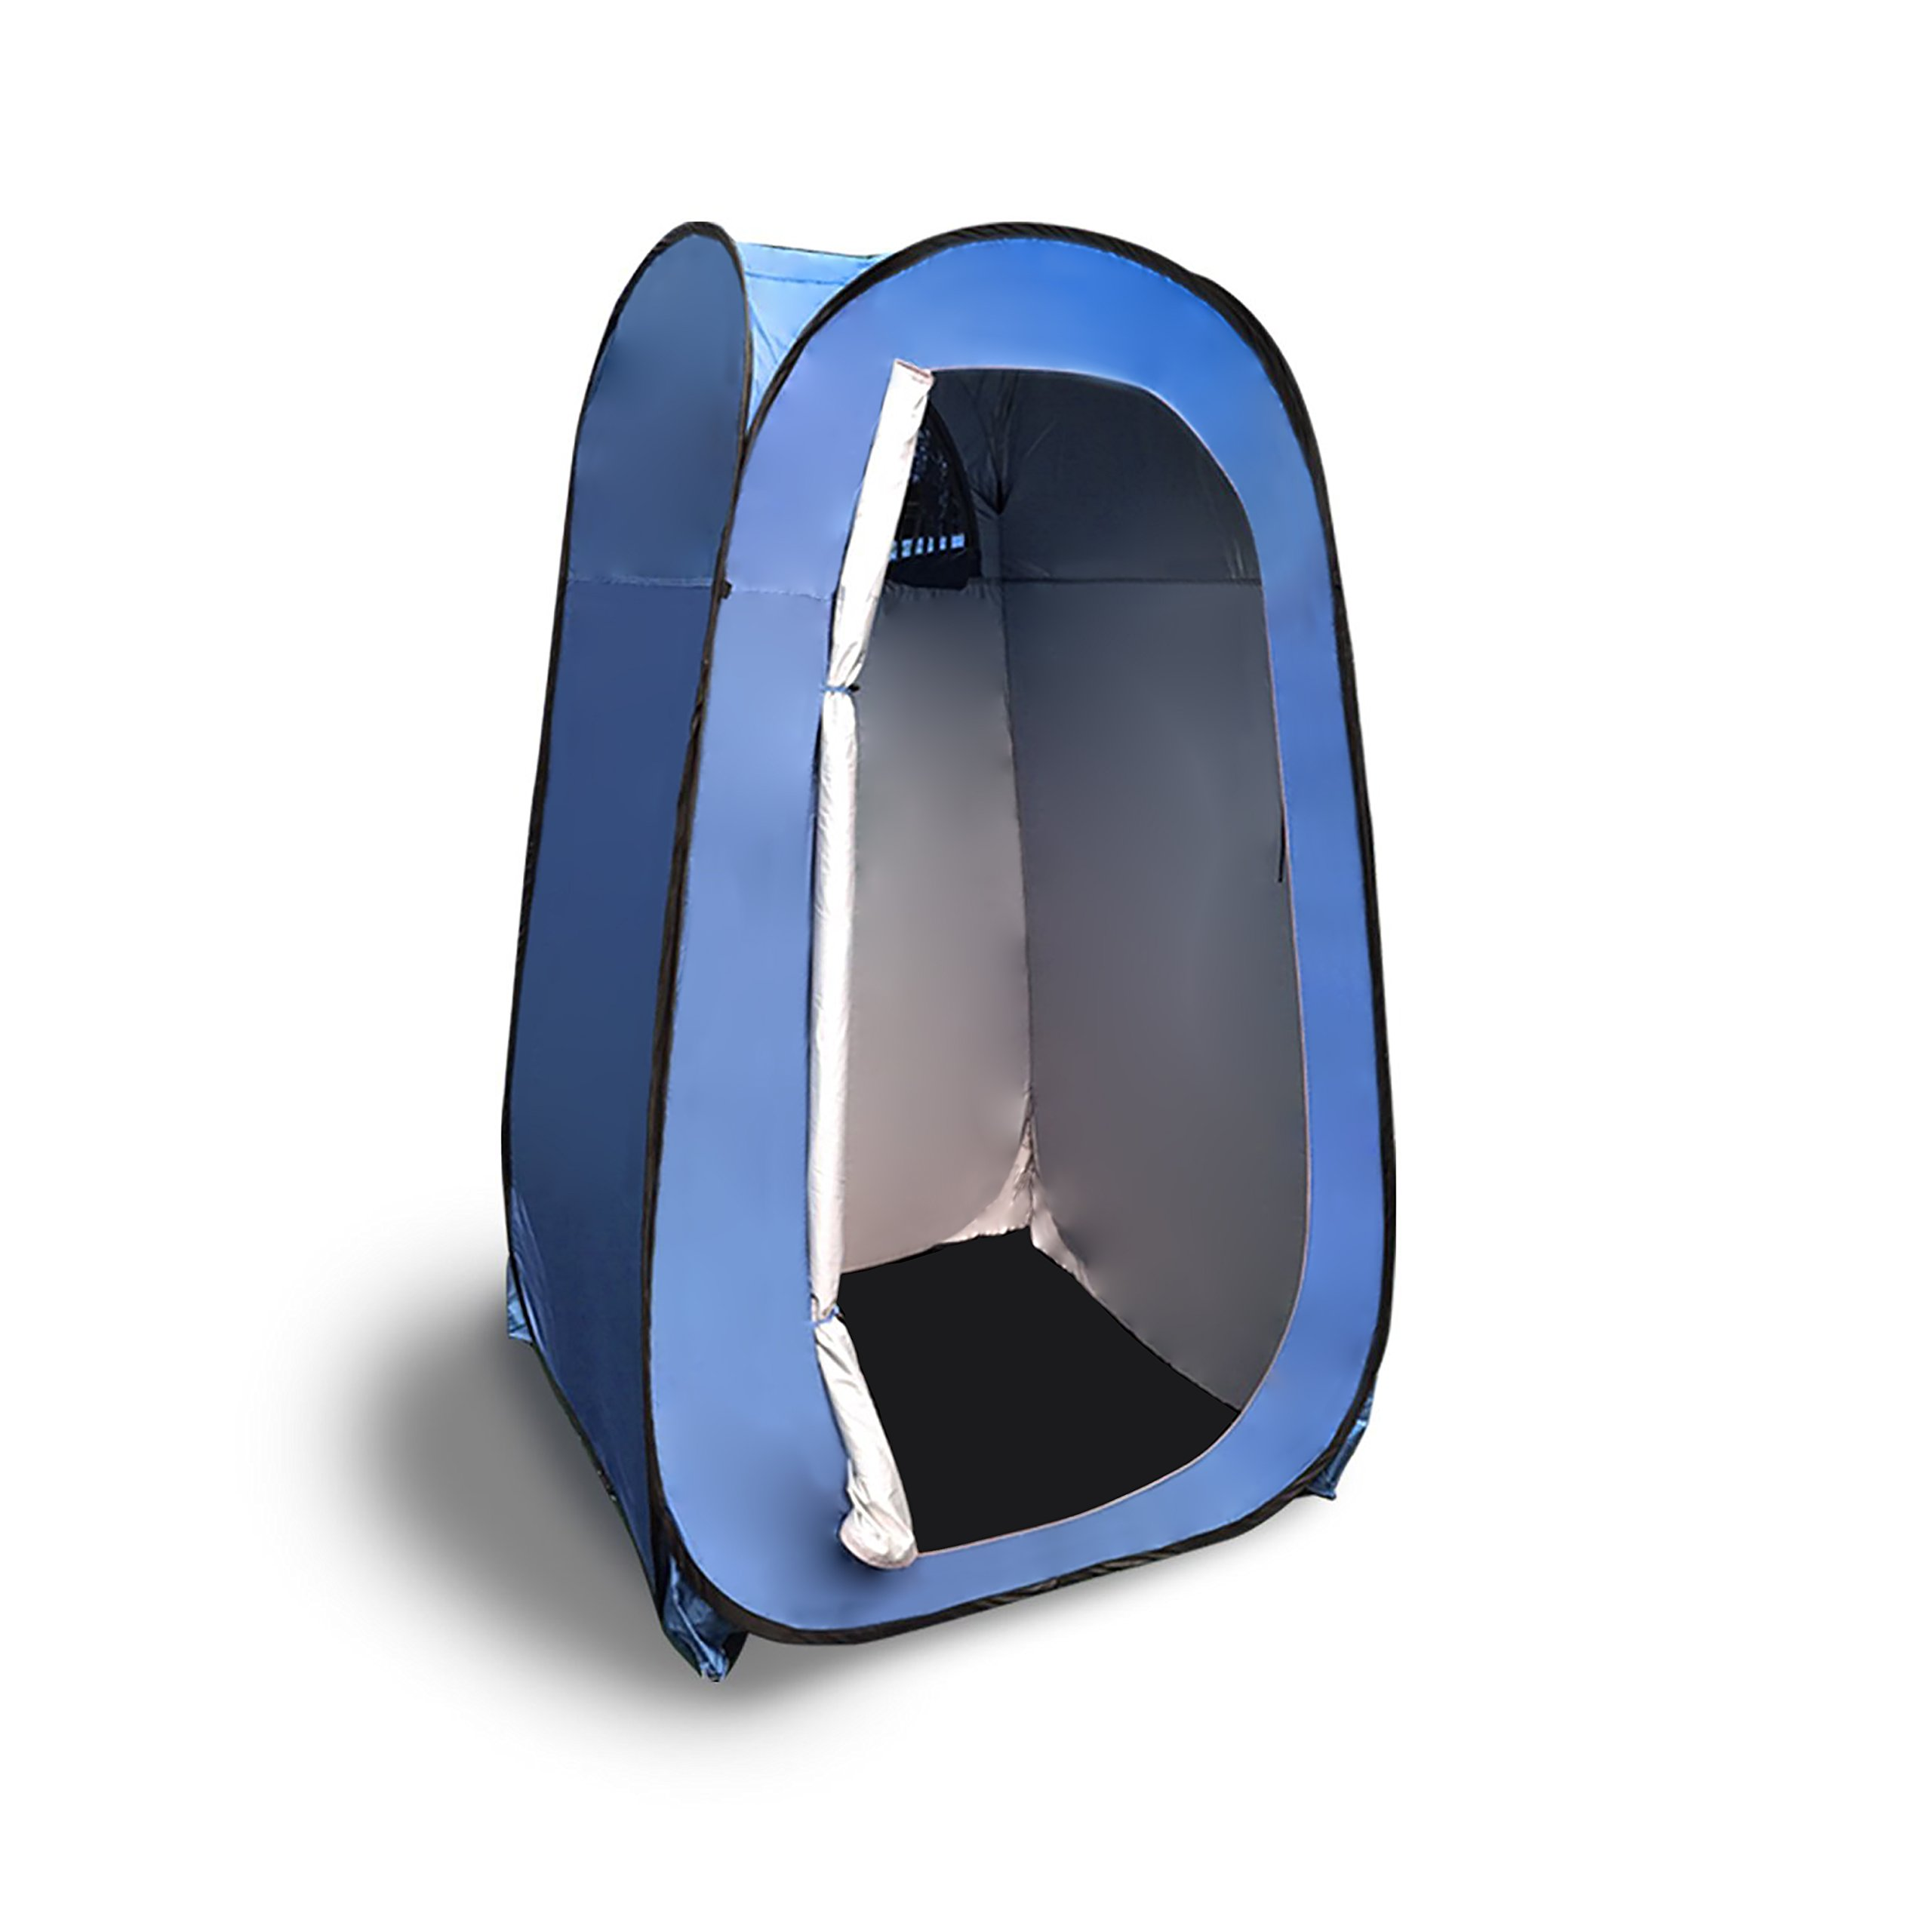 ZEYU Sports Pop up Dressing/Changing Tent Beach Toilet Shower Changing Room Outdoor Shelter with Carrying Bag, 6.89Ft